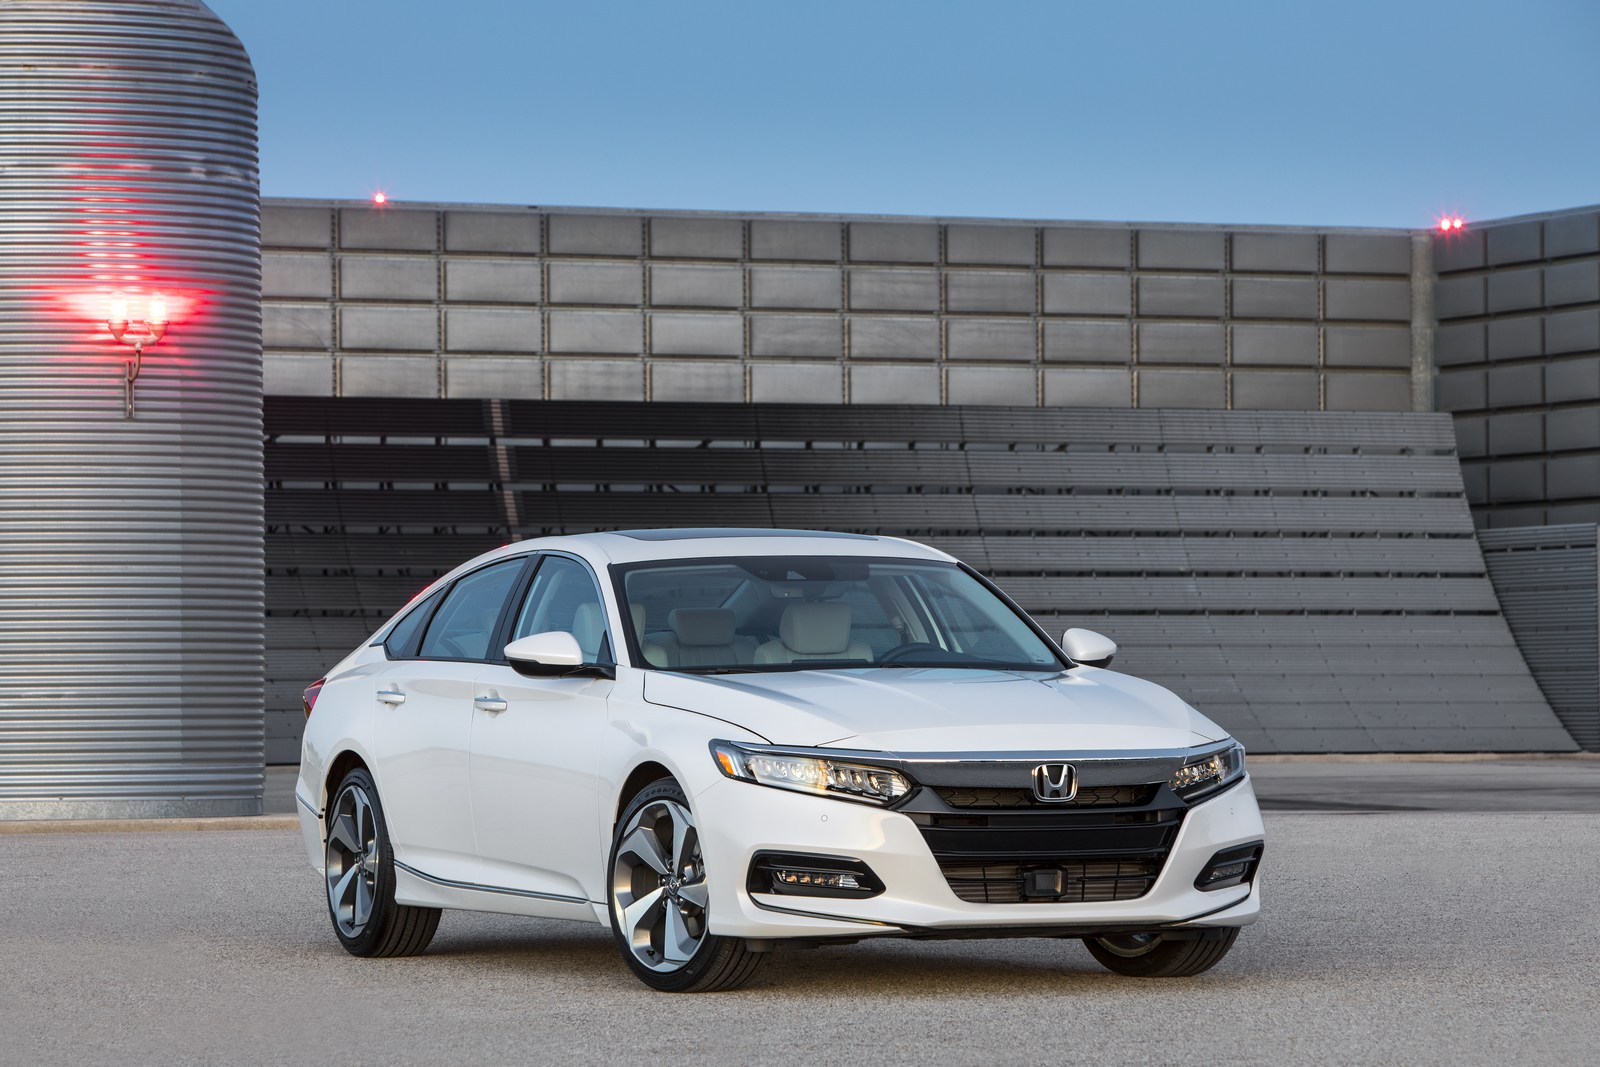 2018 honda accord unveiled with turbocharged four cylinder engines carscoops. Black Bedroom Furniture Sets. Home Design Ideas